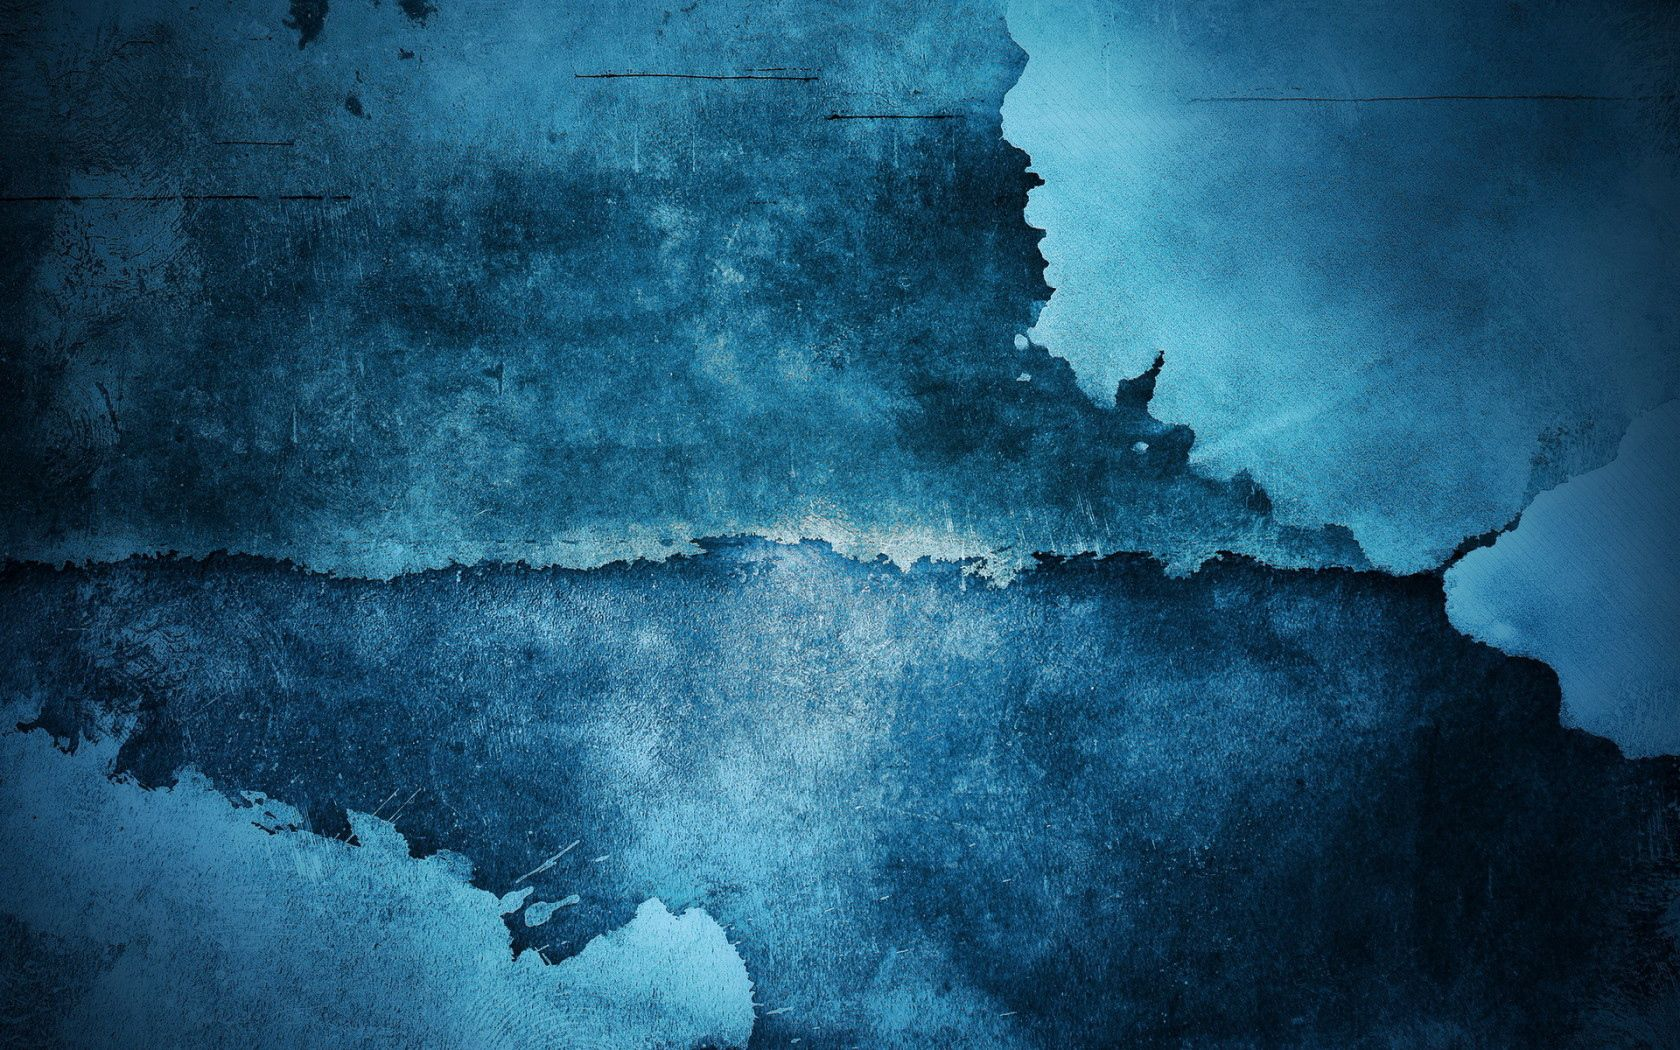 147843 download wallpaper Textures, Abstract, Dark, Texture, Paint, Wall screensavers and pictures for free